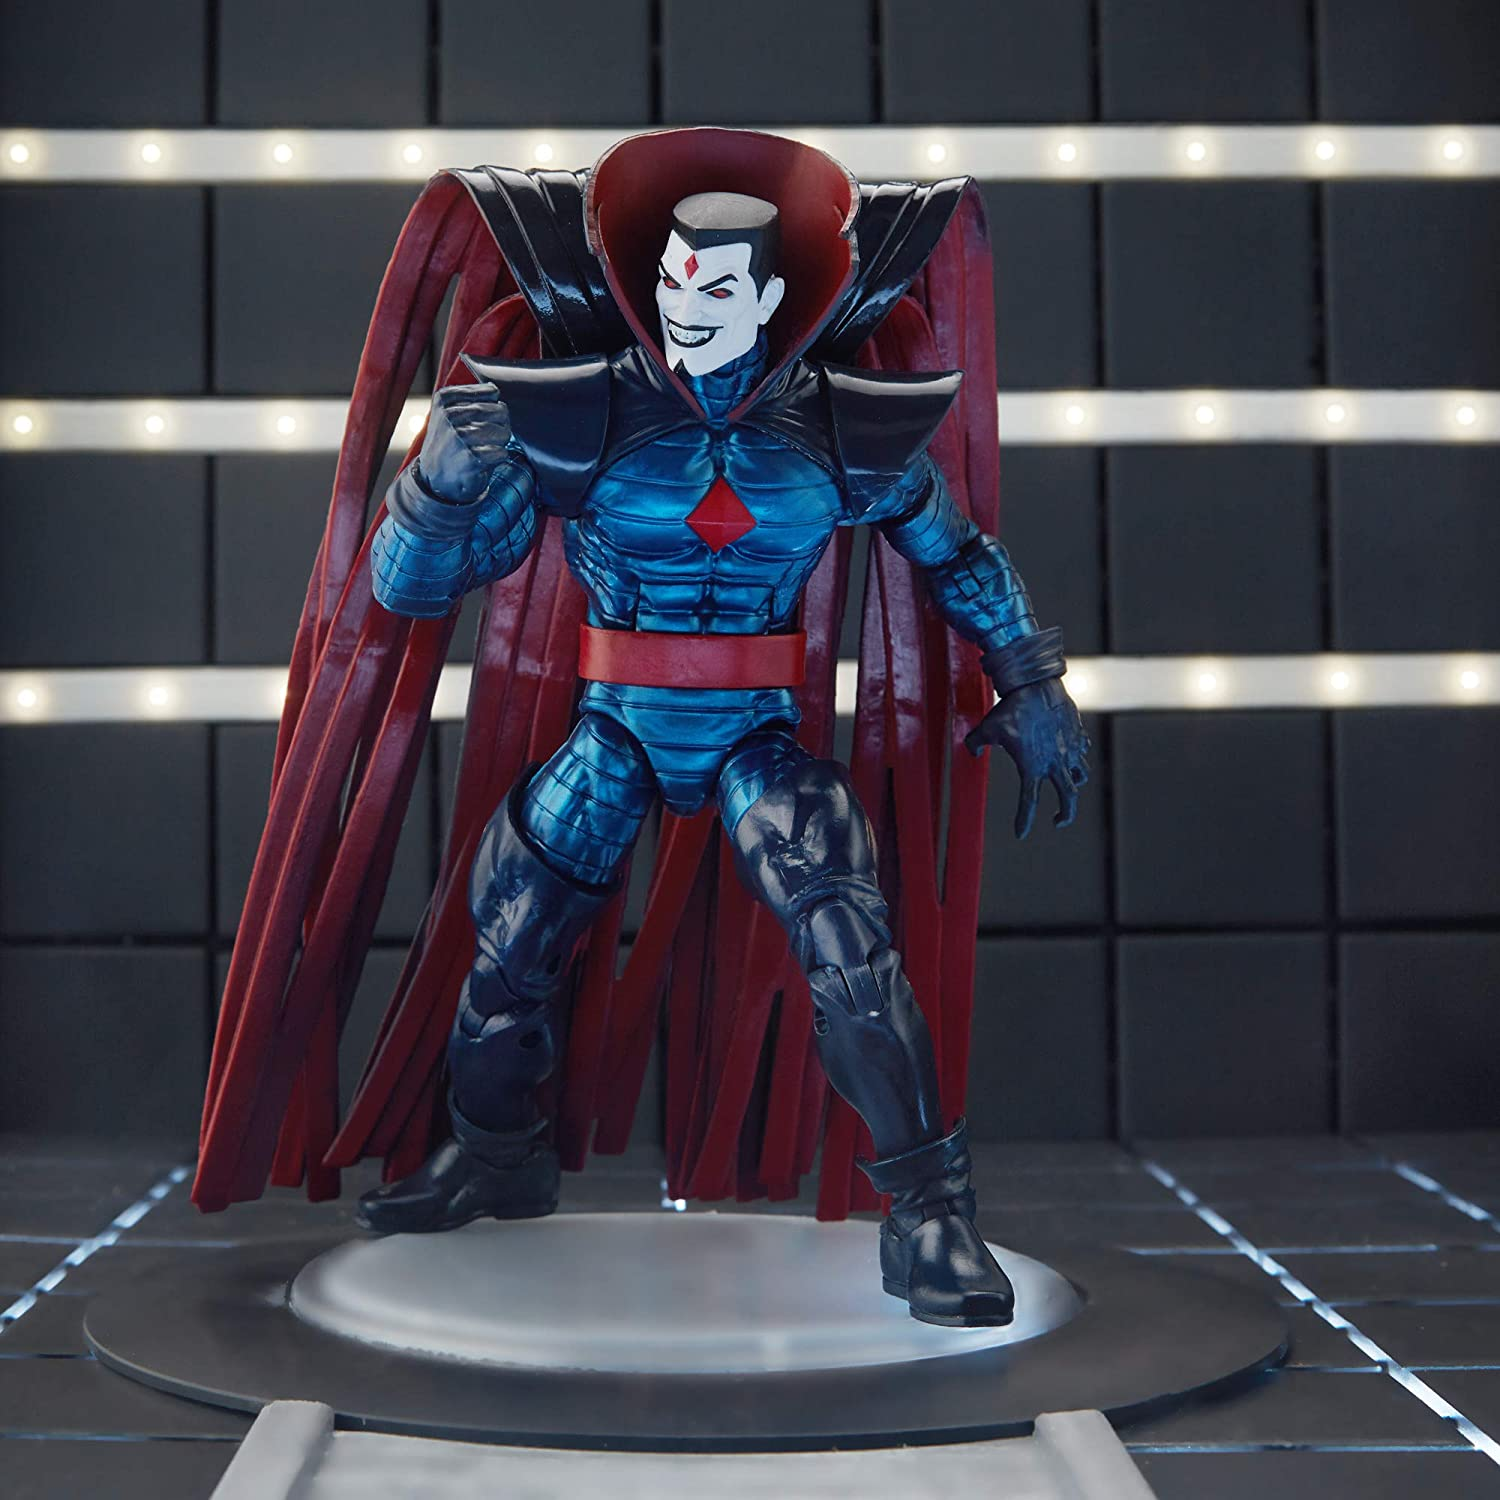 Marvel Legends E5302(E6116) Series 6-inch Collectible Action Figure Mister Sinister Toy